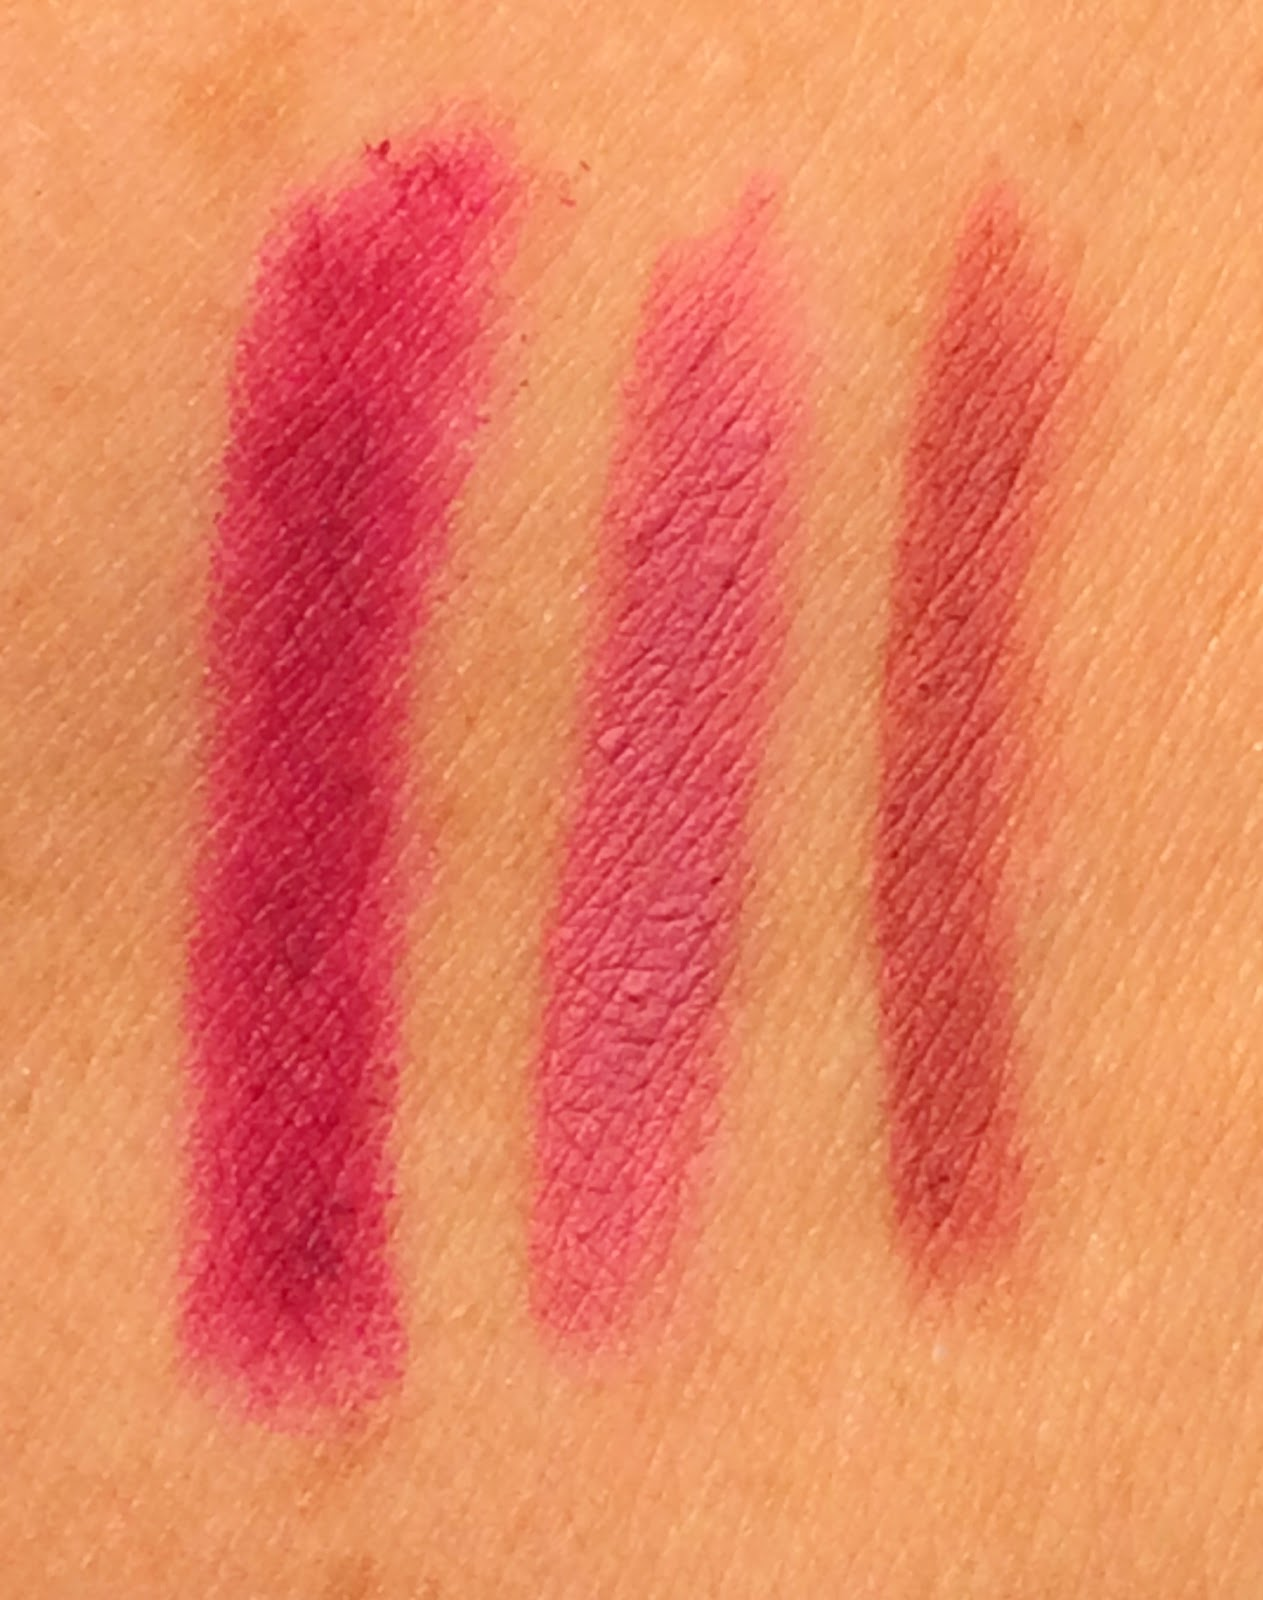 MAC Lip Pencil swatches Rebellious, Edge to Edge, Soar